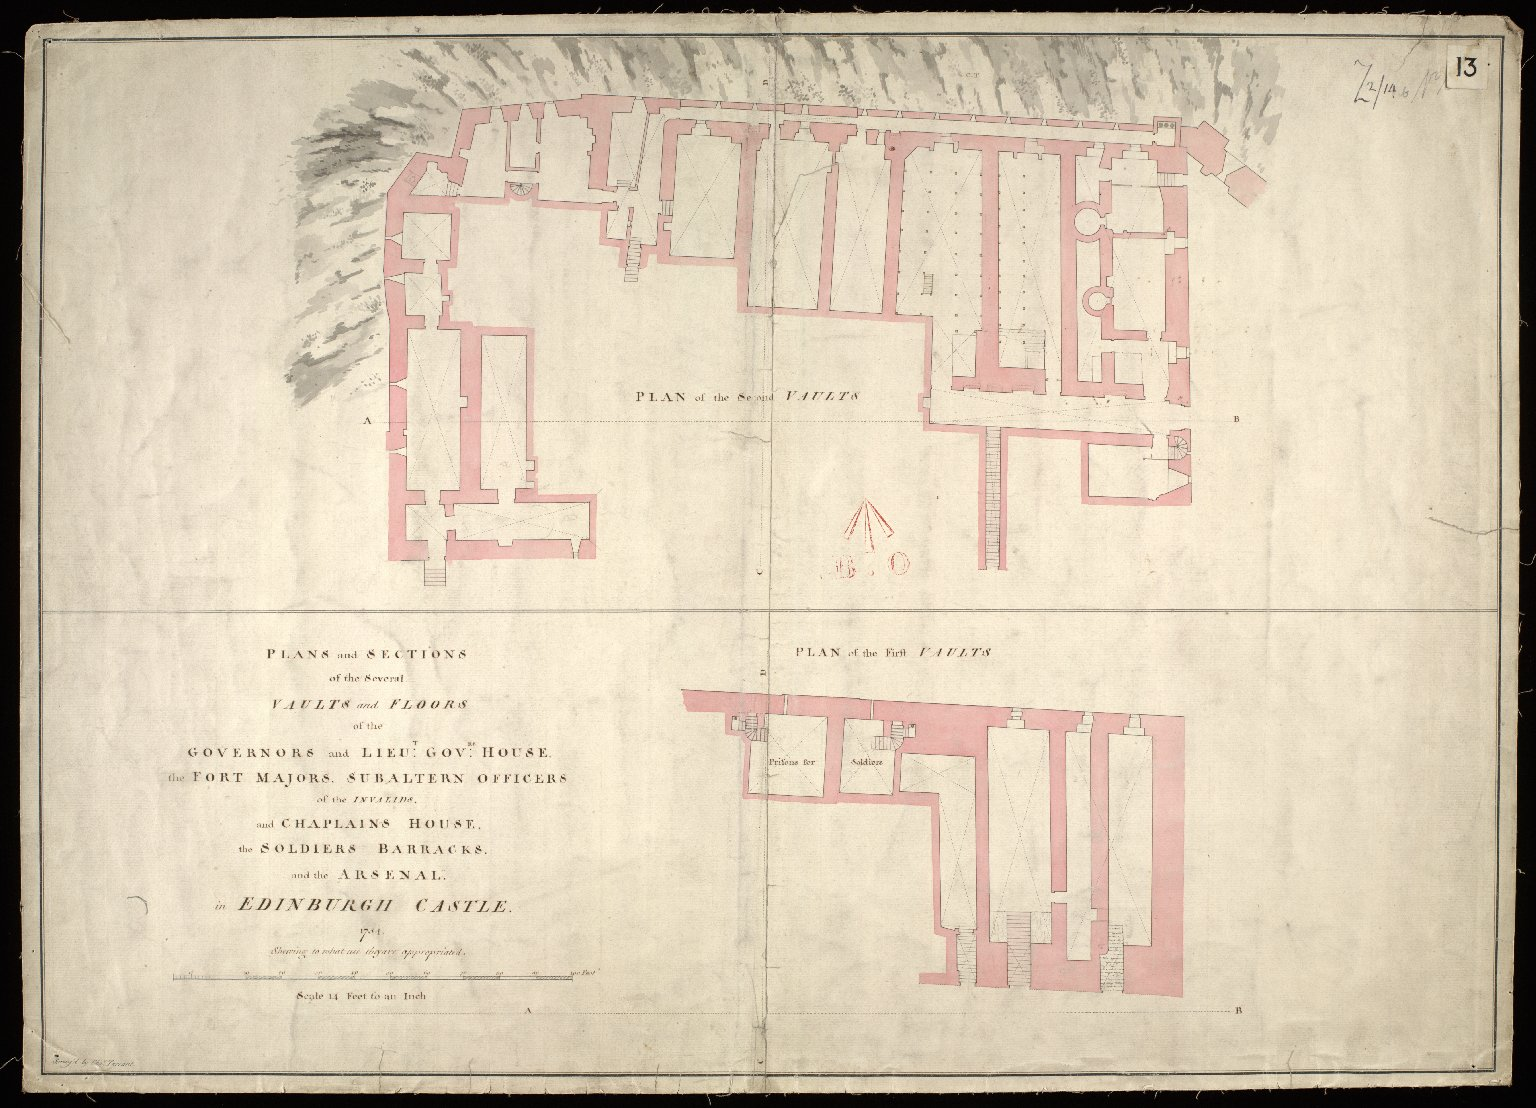 Plans and sections of the several vaults and floors of the Governors and Lieut: Govrs: house, the Fort Majors, Subaltern Officers of the Invalids, and the Chaplains house, the soldiers barracks and the arsenal in the Edinburgh Castle 1754 [1 of 1]